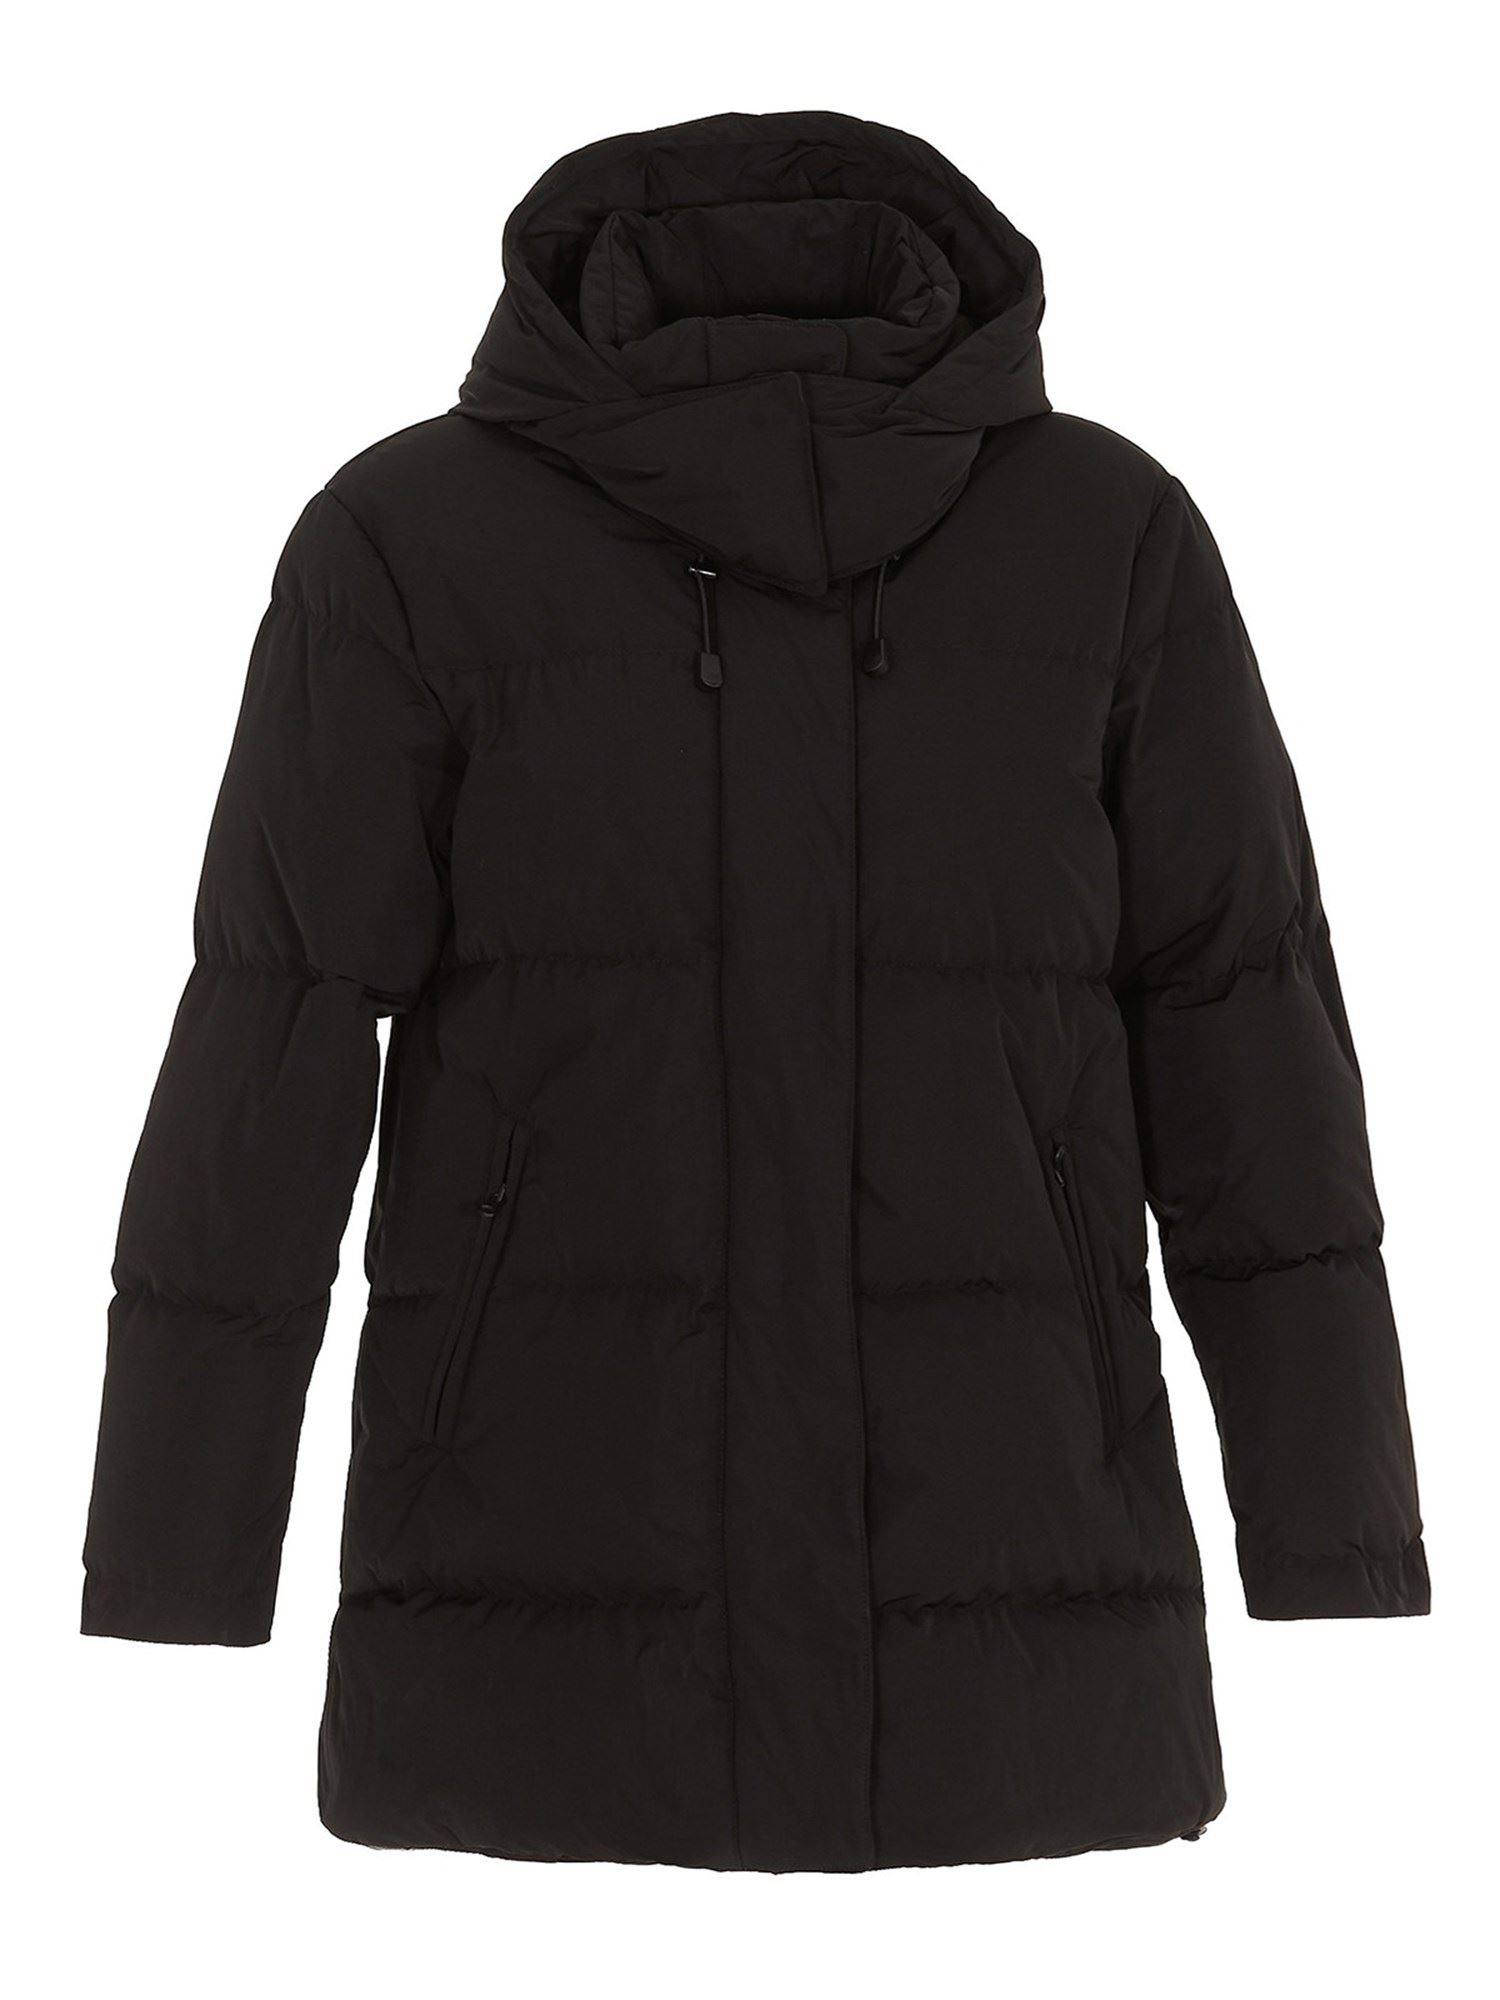 Aspesi QUILTED PUFFER JACKET